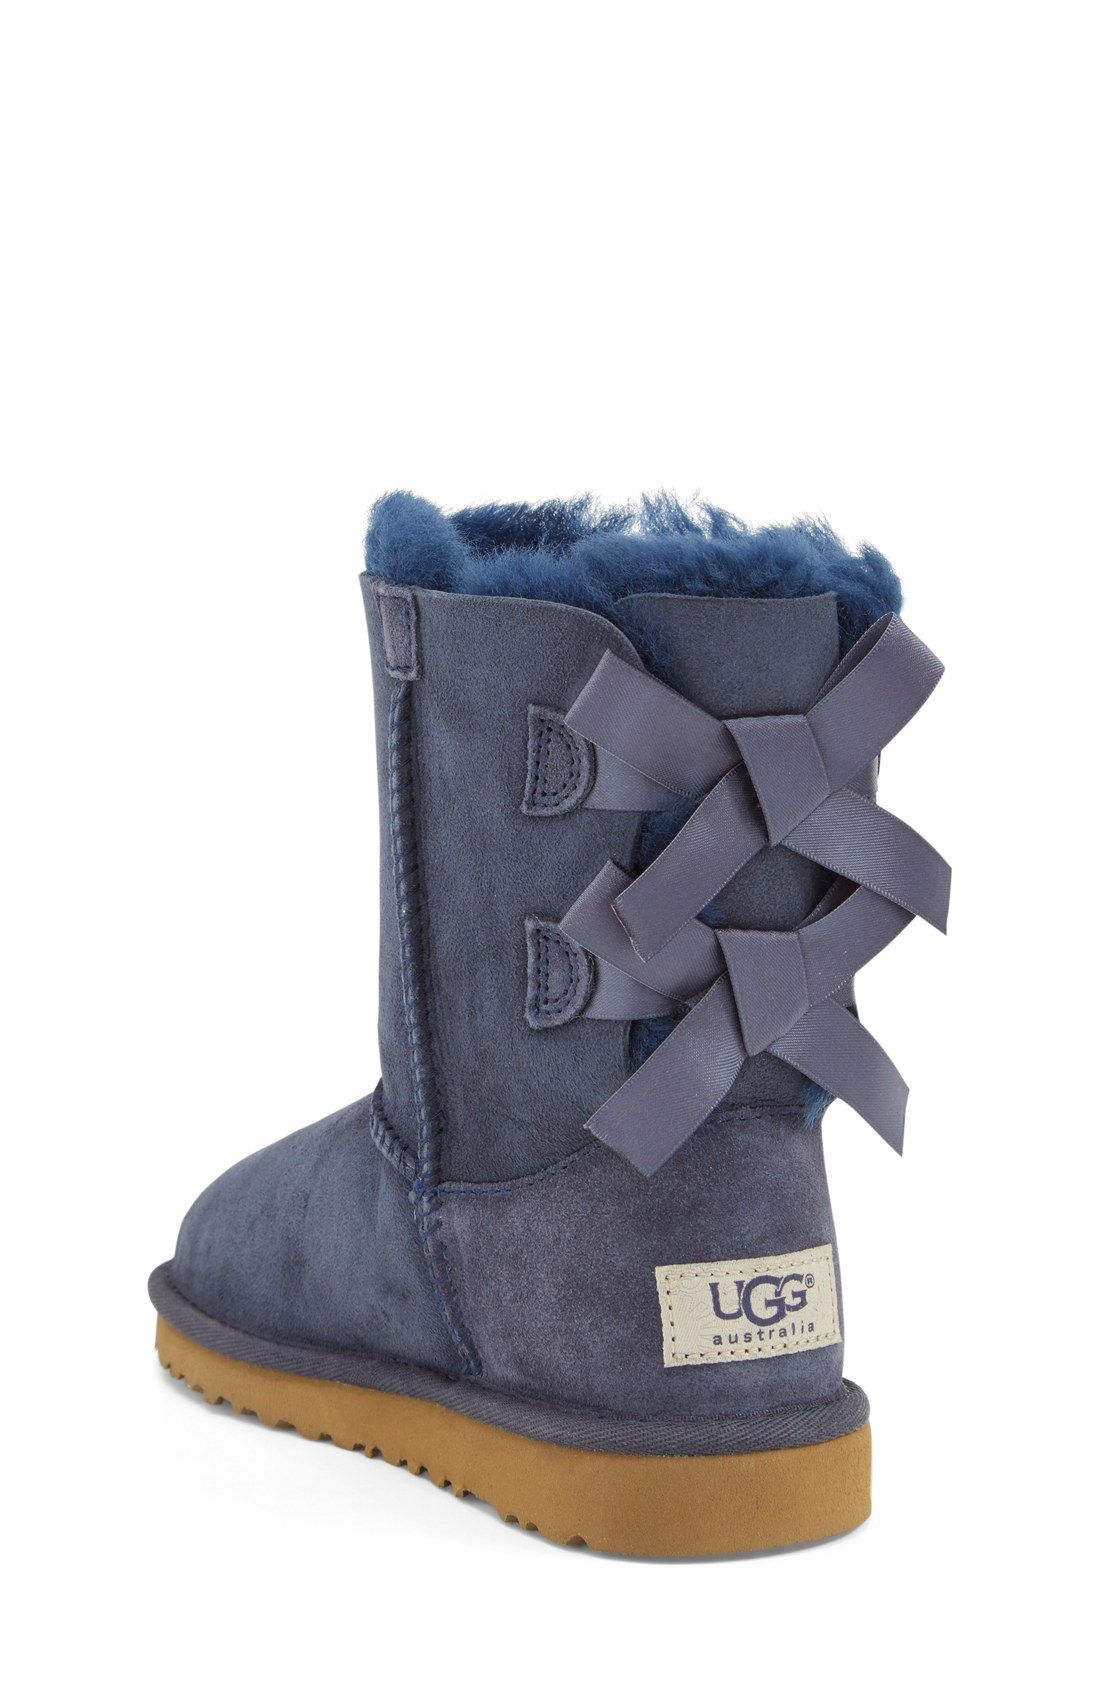 c3468160ba4 Obsessing over these super cozy UGG Australia boots with two ...